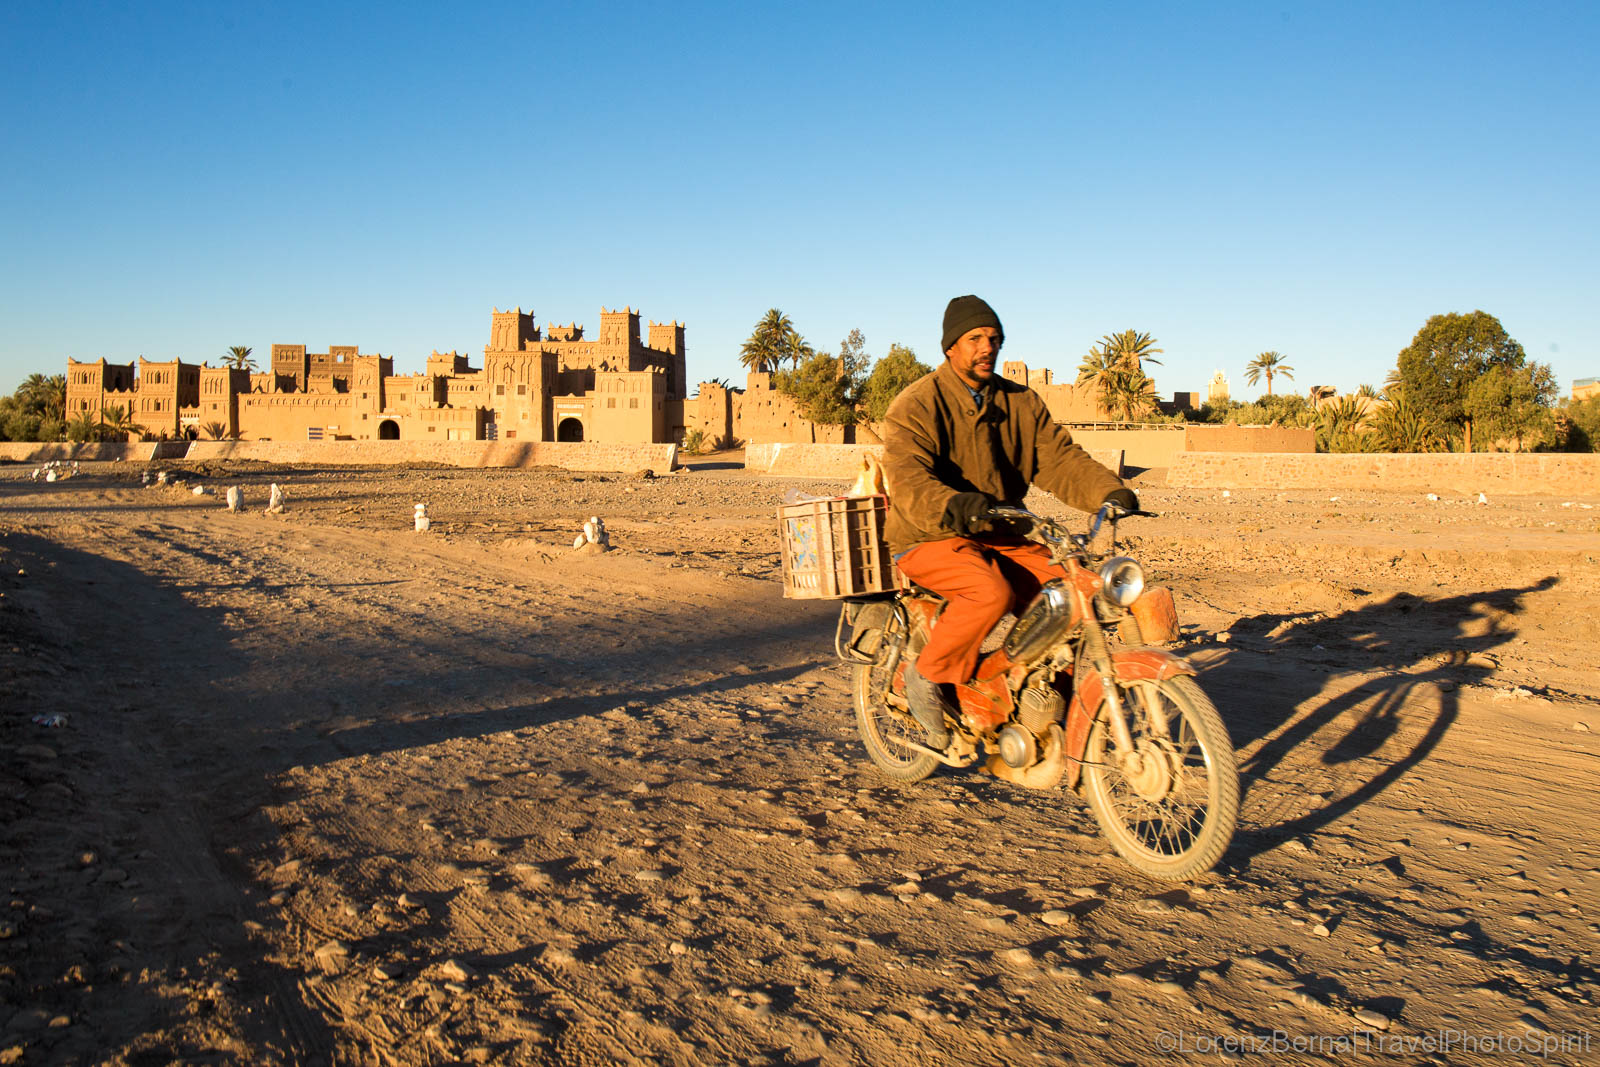 Local man on motorbike passing in front of the Amerhidl Kasbah in Skoura, Morocco